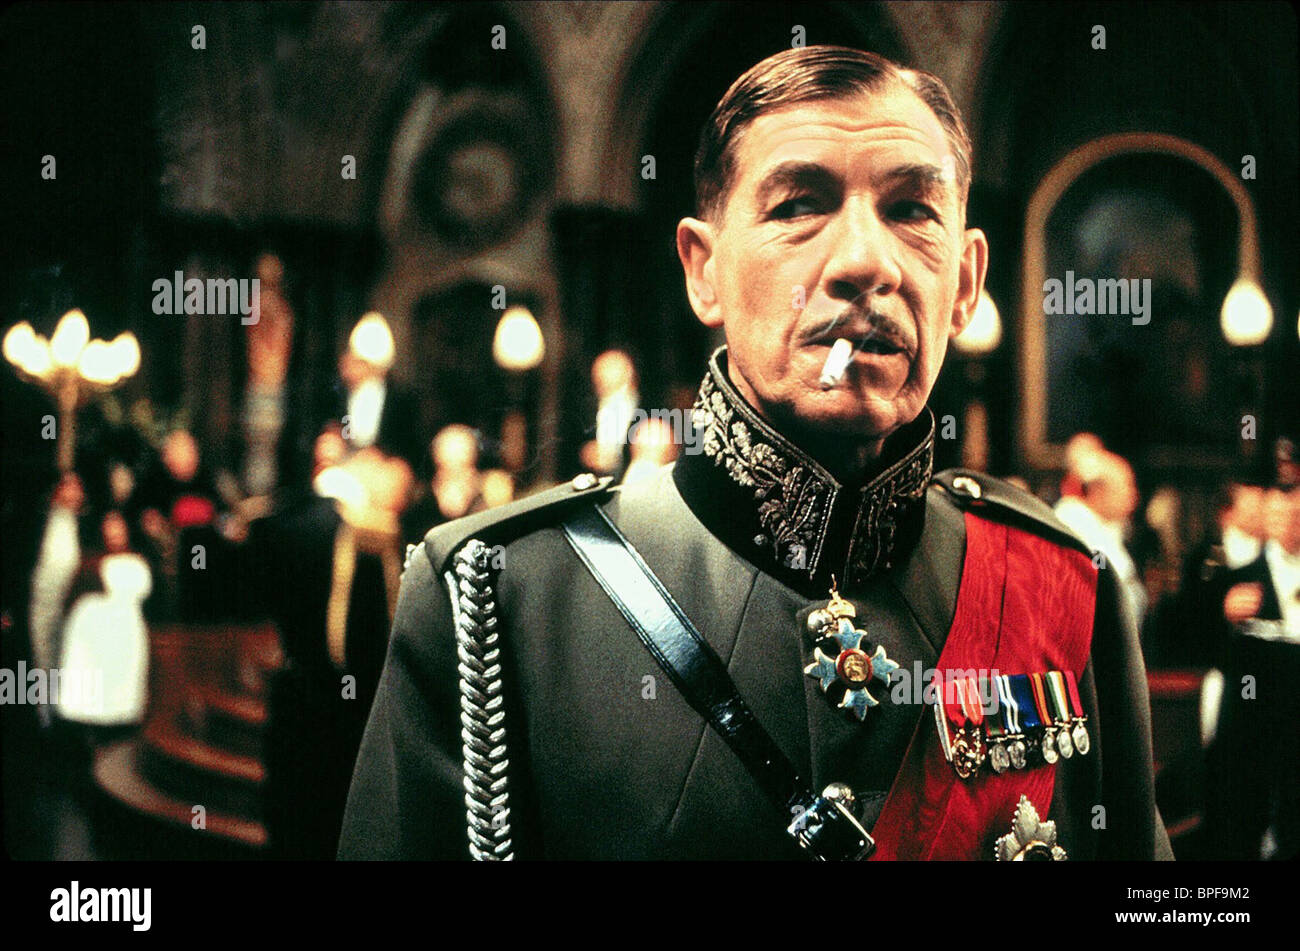 SIR IAN MCKELLEN RICHARD III (1995) - Stock Image